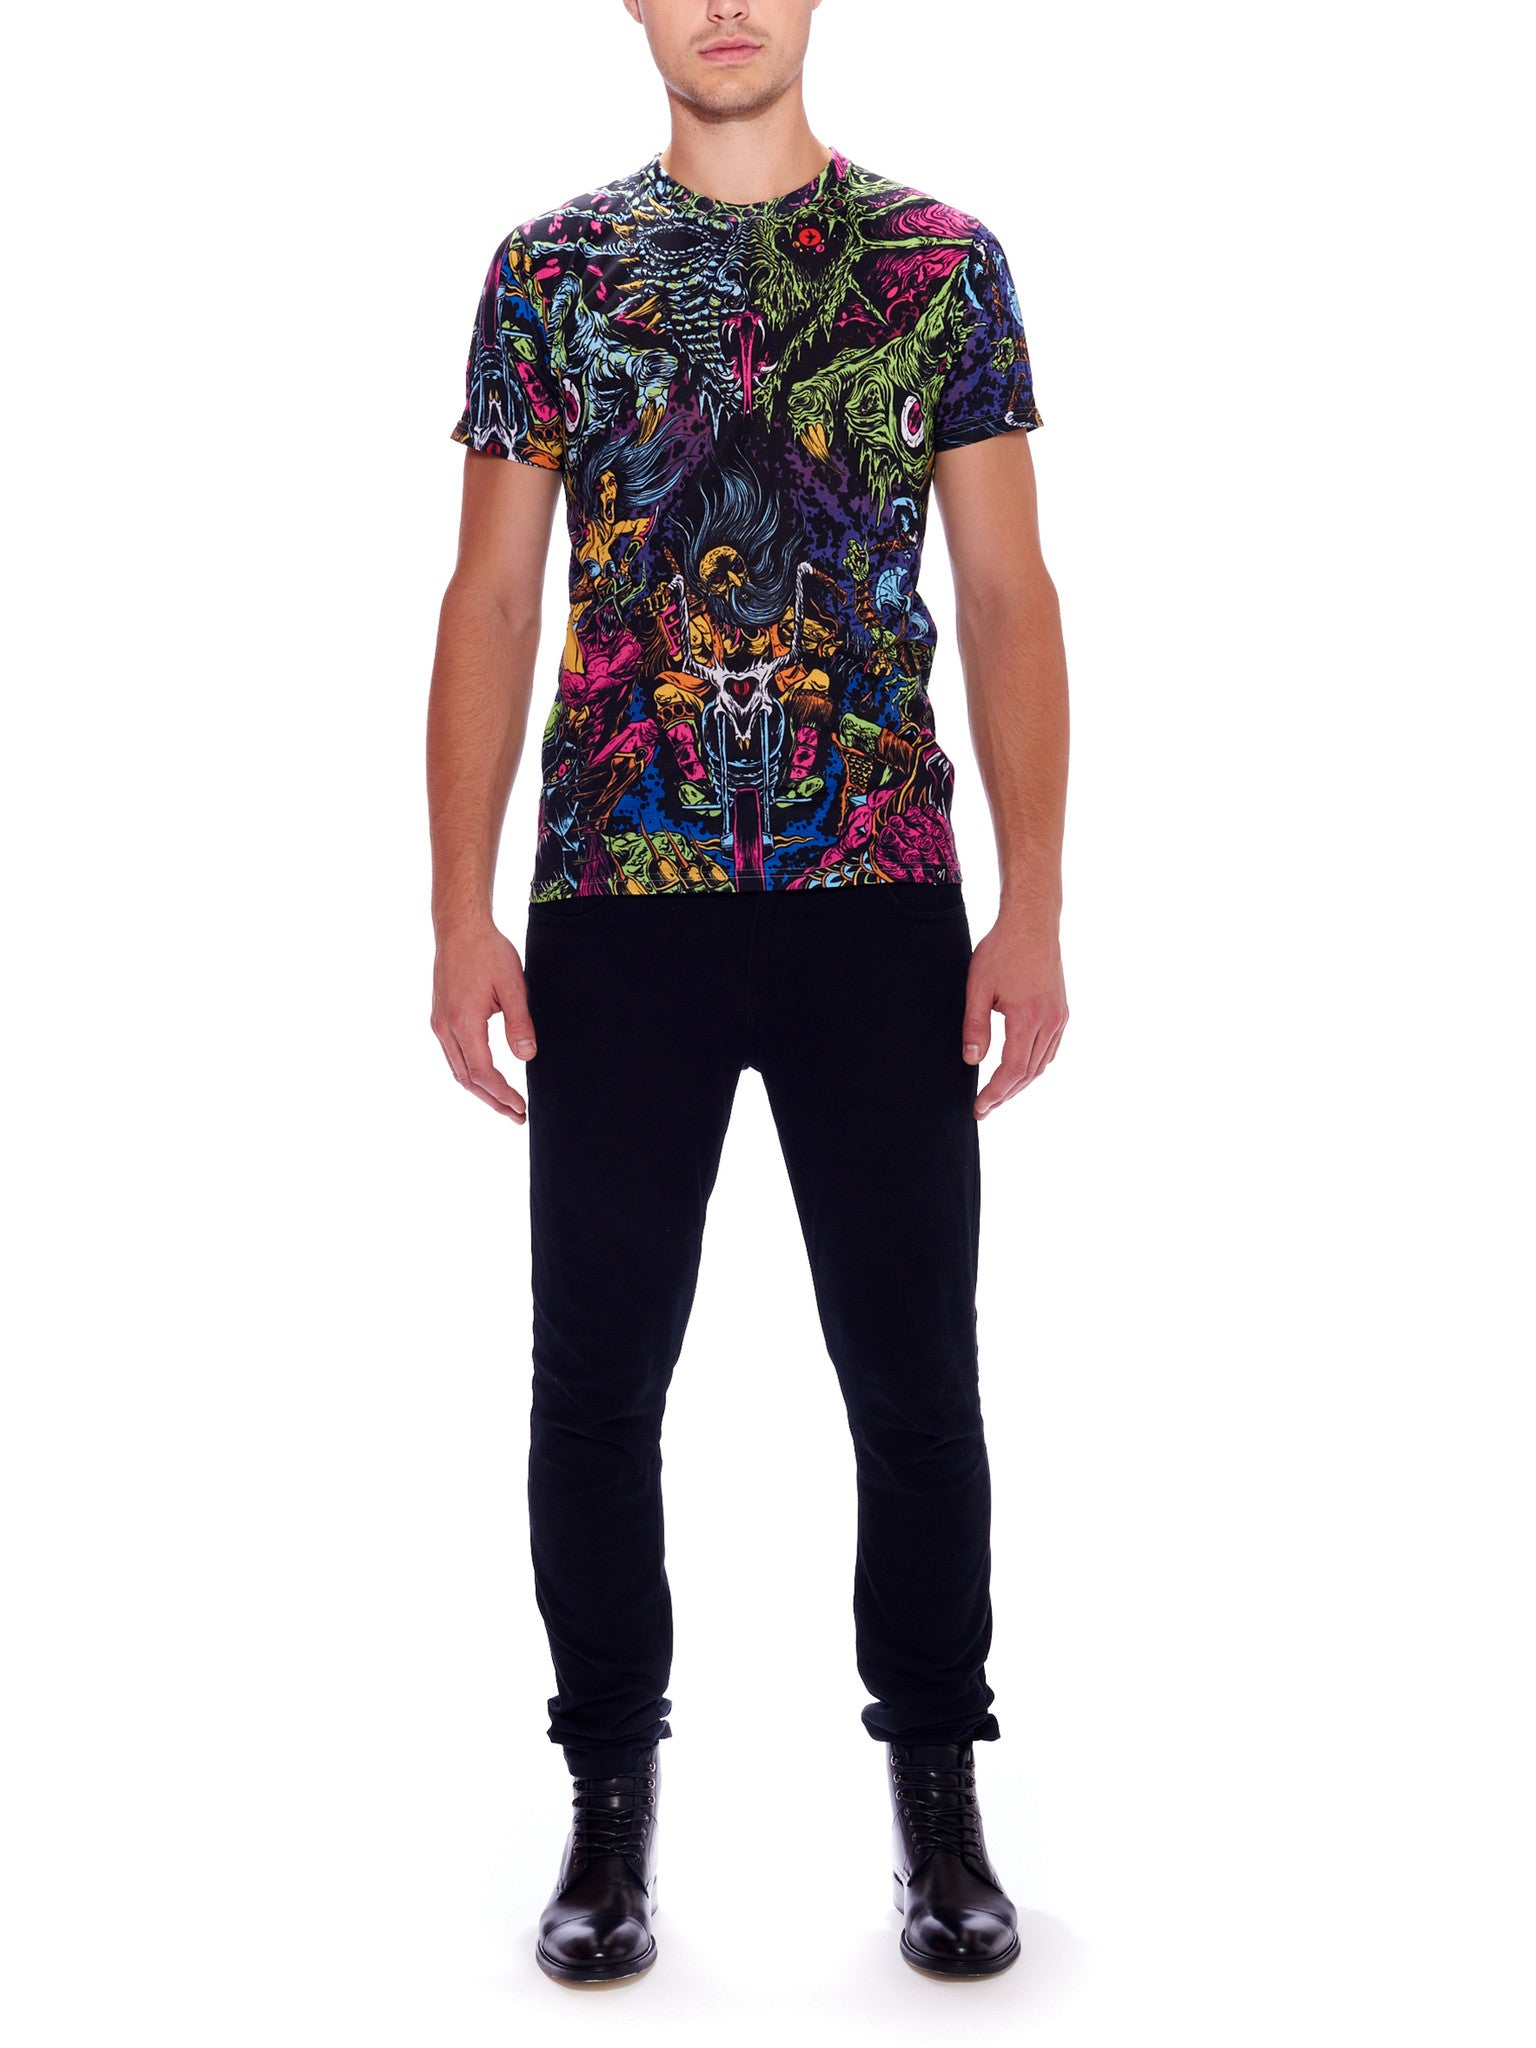 Space Biker Men's Classic T-Shirt